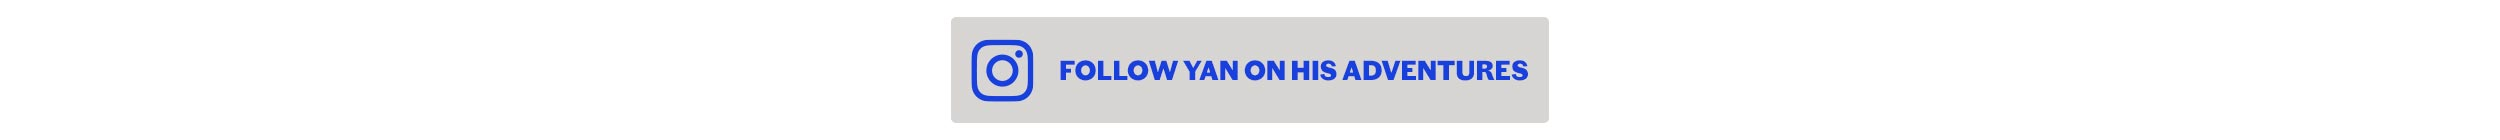 follow yan on his adventures--sports experts influencer